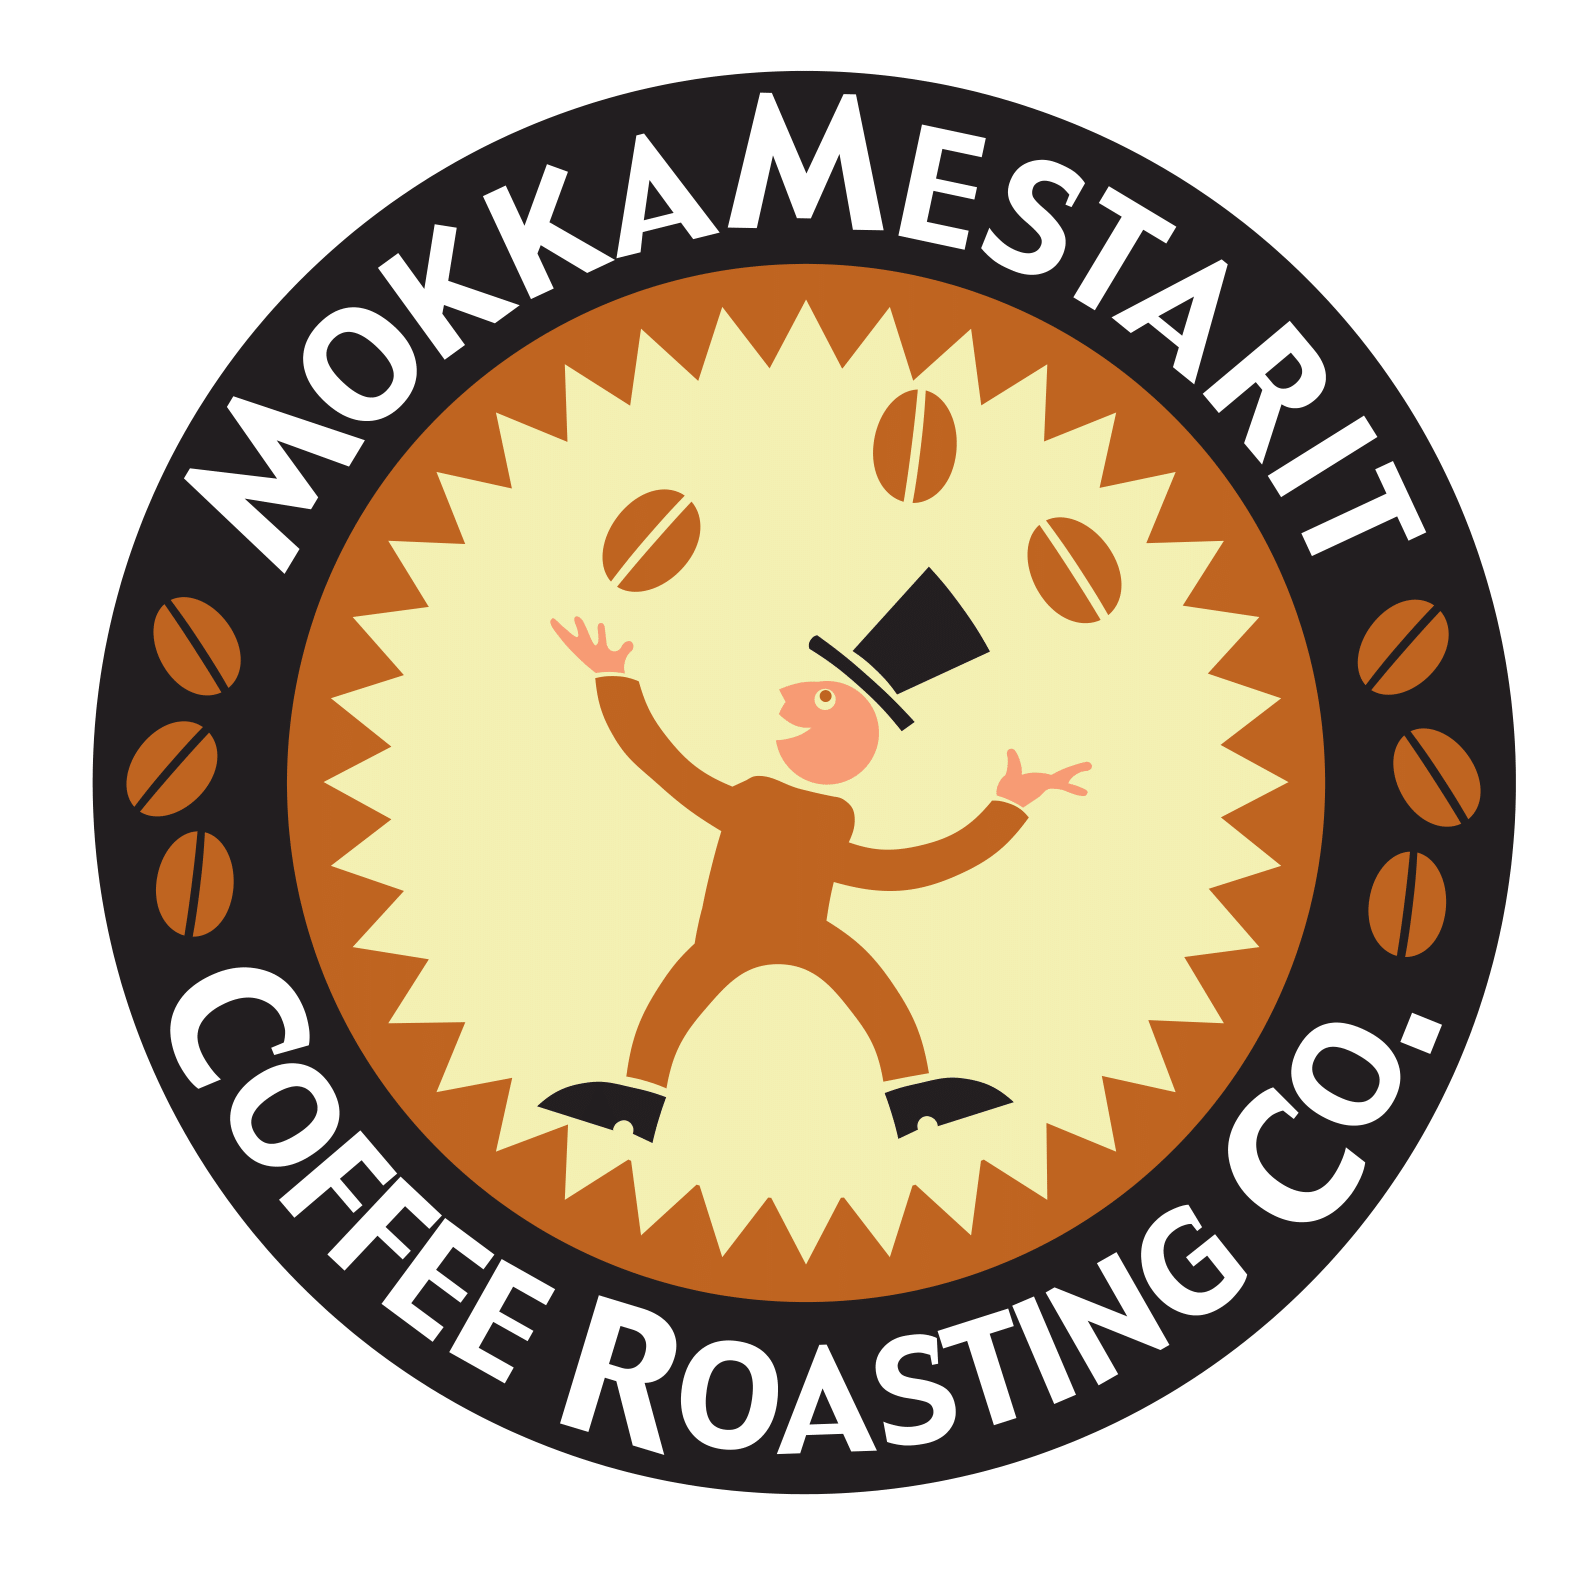 logo_coffee-roasting-co-1